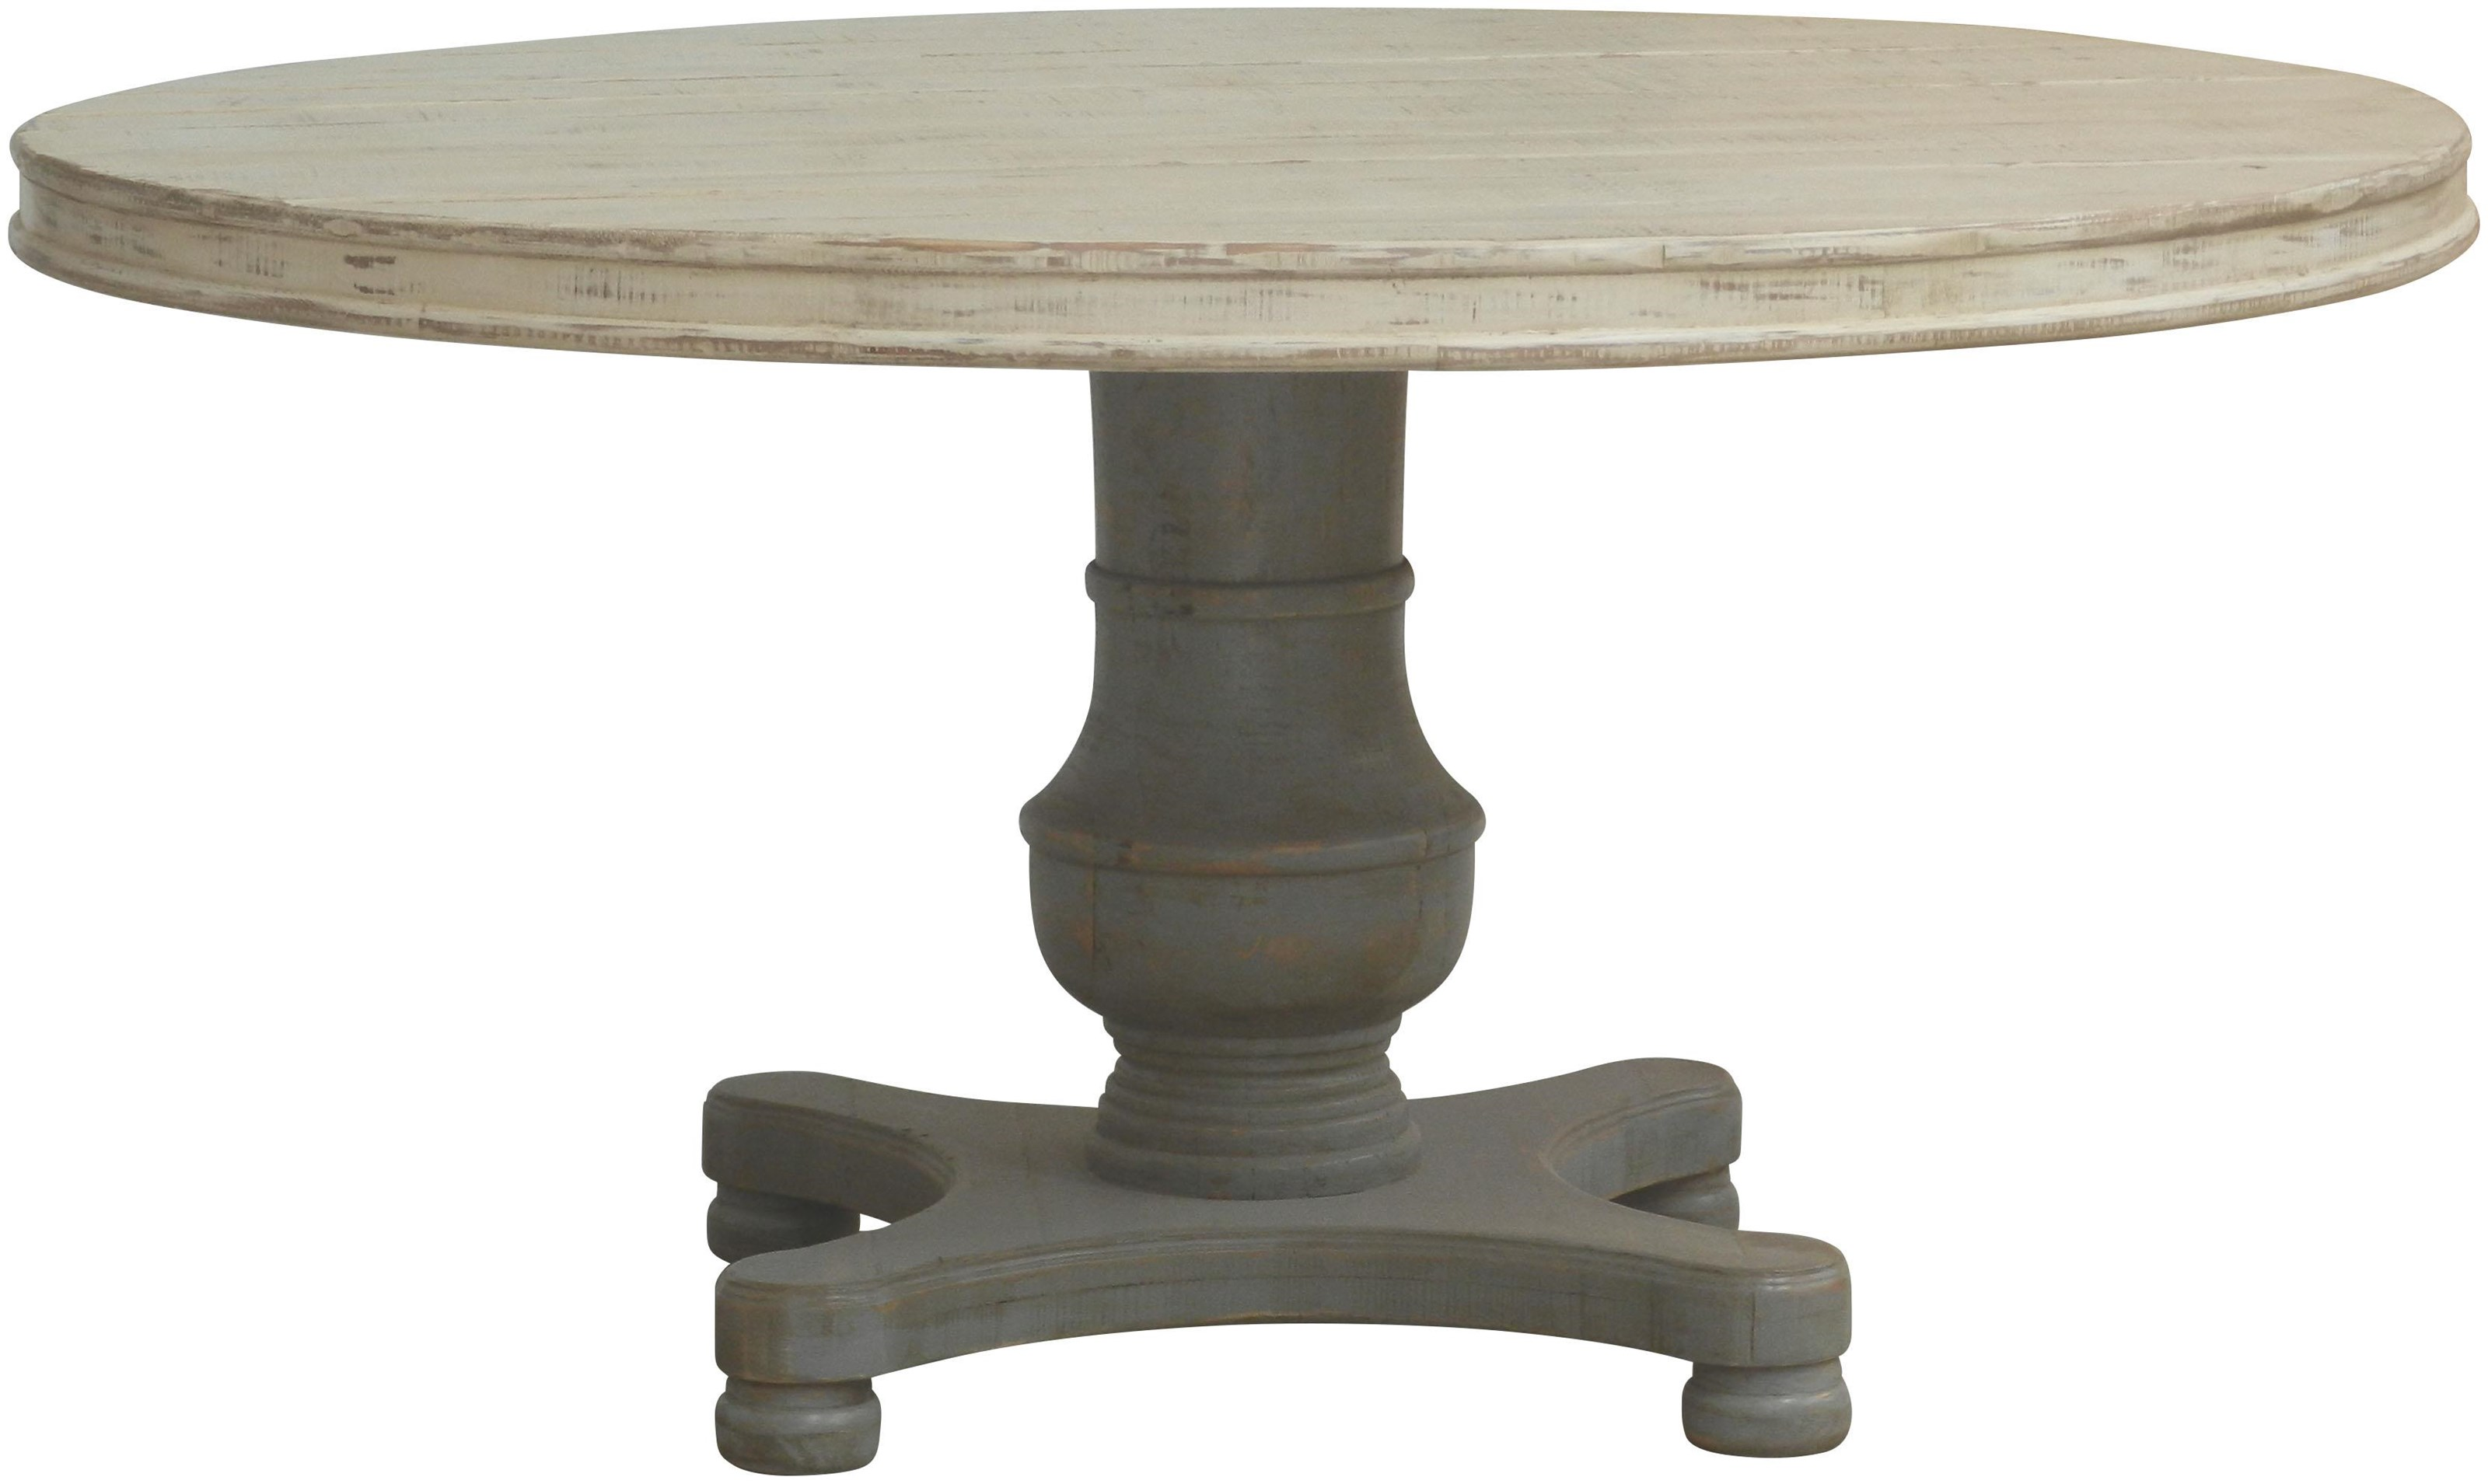 Furniture Source International Accent Pieces Rosslyn Round Dining Table - Item Number: FSI-GV-84TBL-MOSS-BASE ANTCREAM-TOP